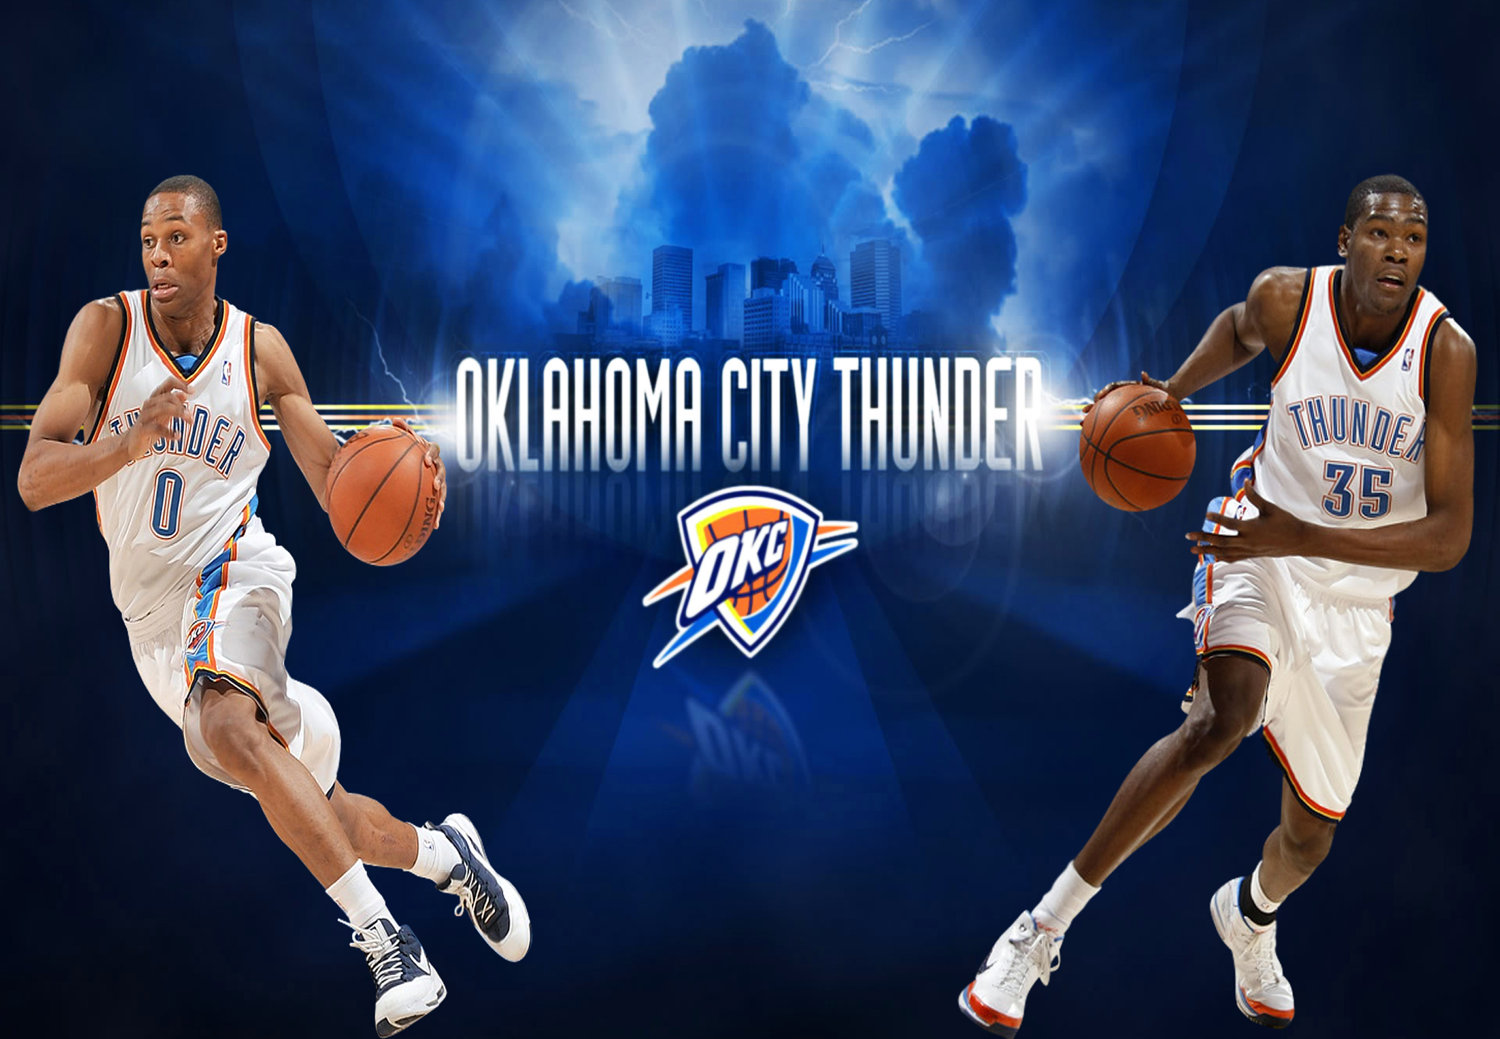 Russell westbrook wallpaper iphone wallpapersafari - Okc Thunder Kevin Durant And Russell Westbrook Wallpaper